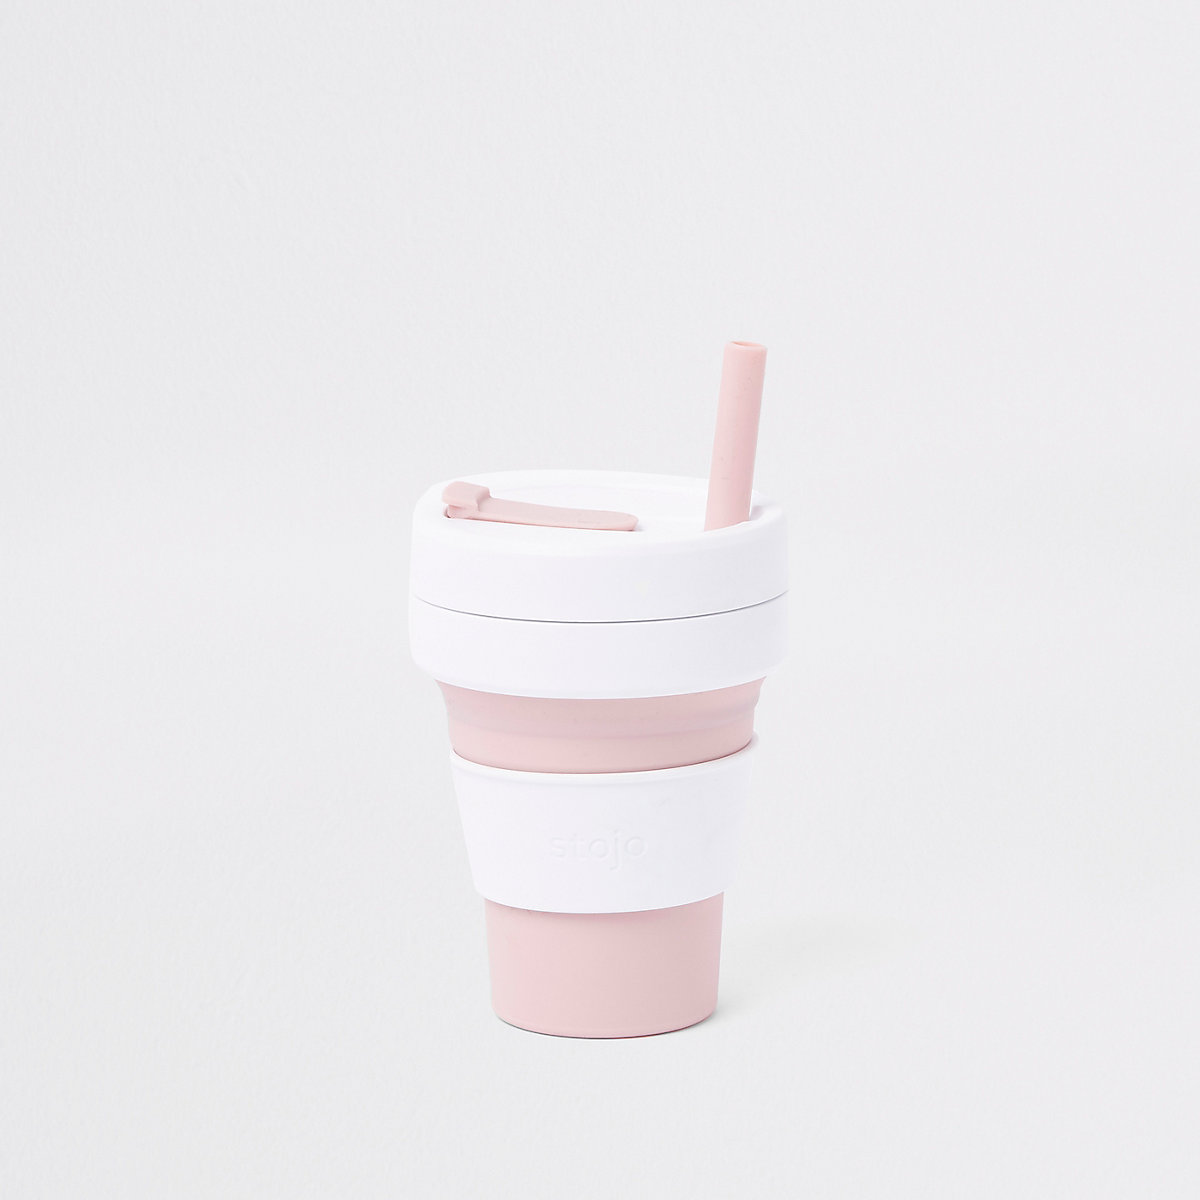 Stojo light pink silicone collapsible cup